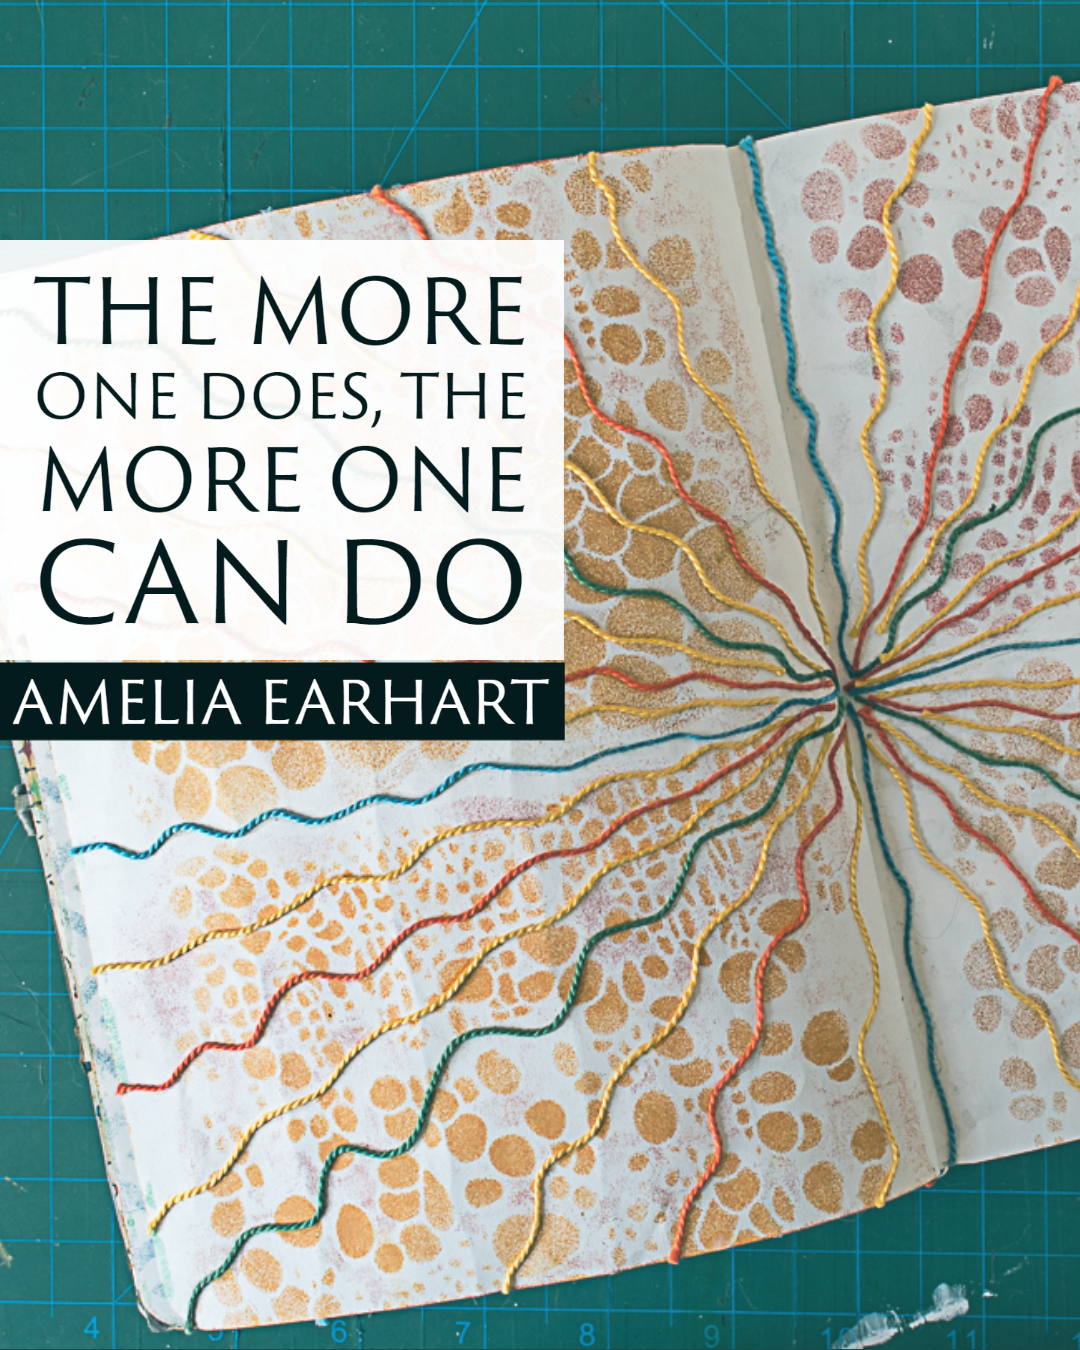 """""""The more one does, the more one can do."""" ~Amelia Earhart"""